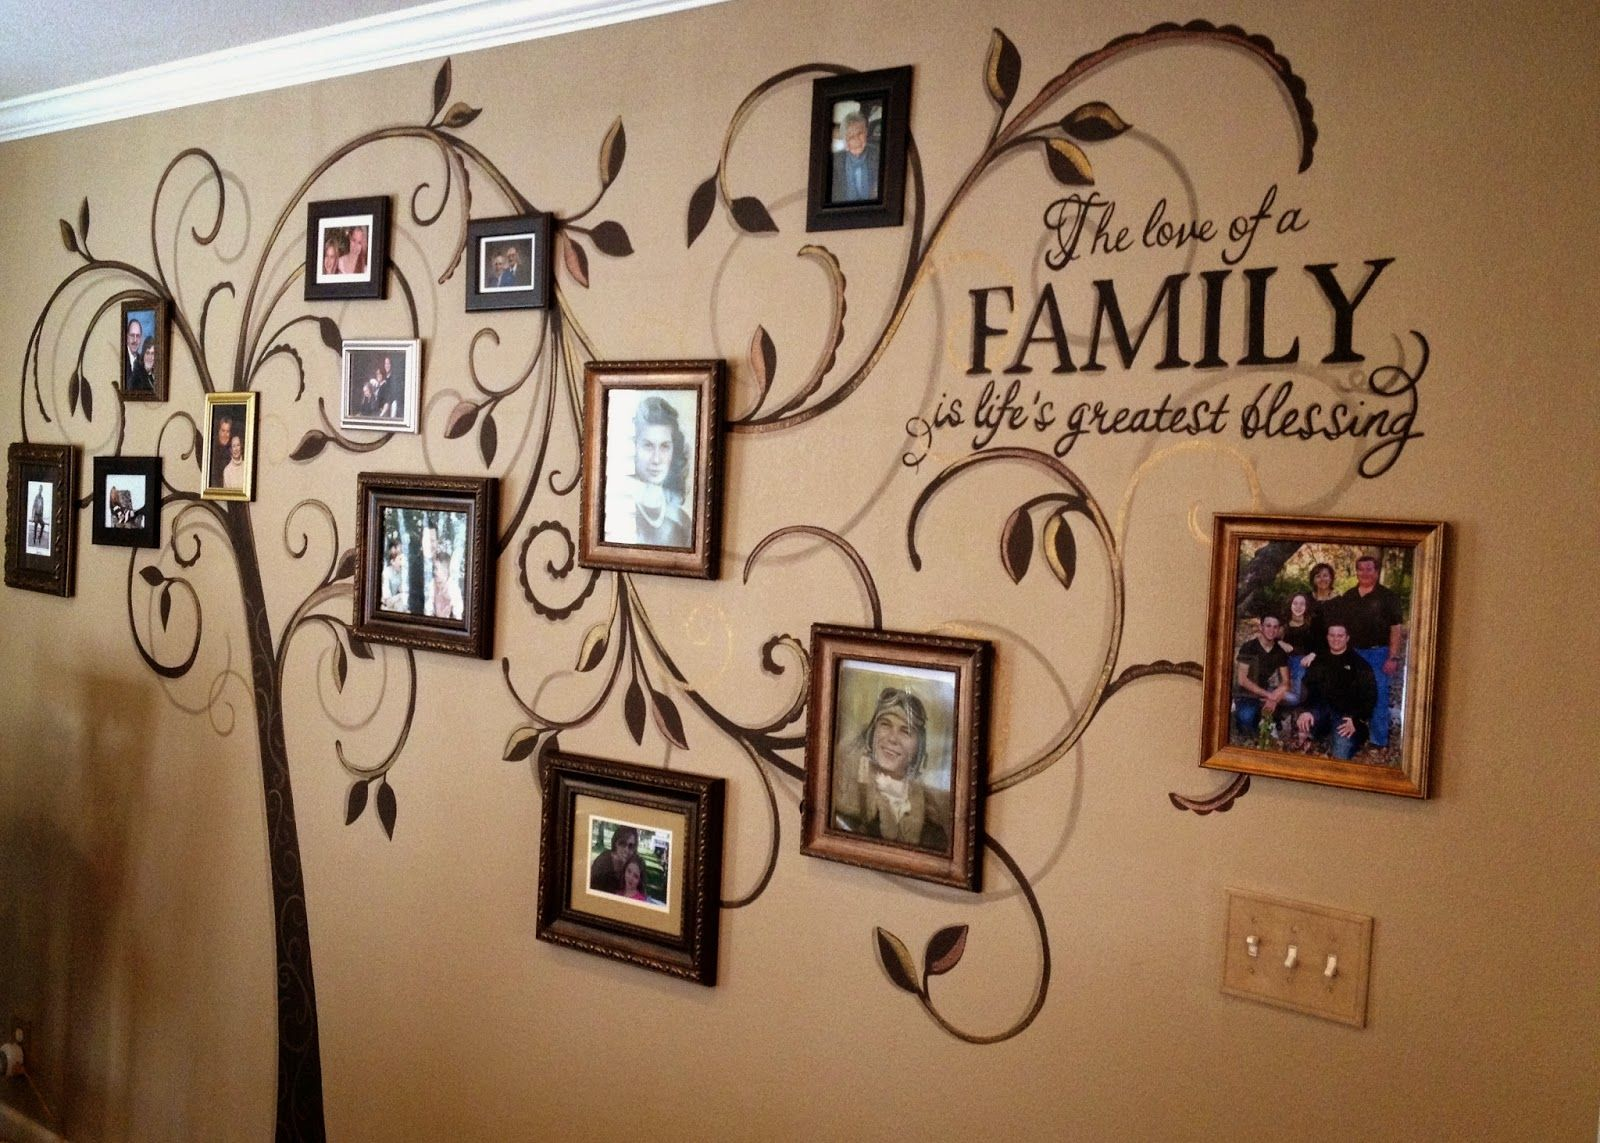 The goal was to display a collage of generations of family photos on a  large focal